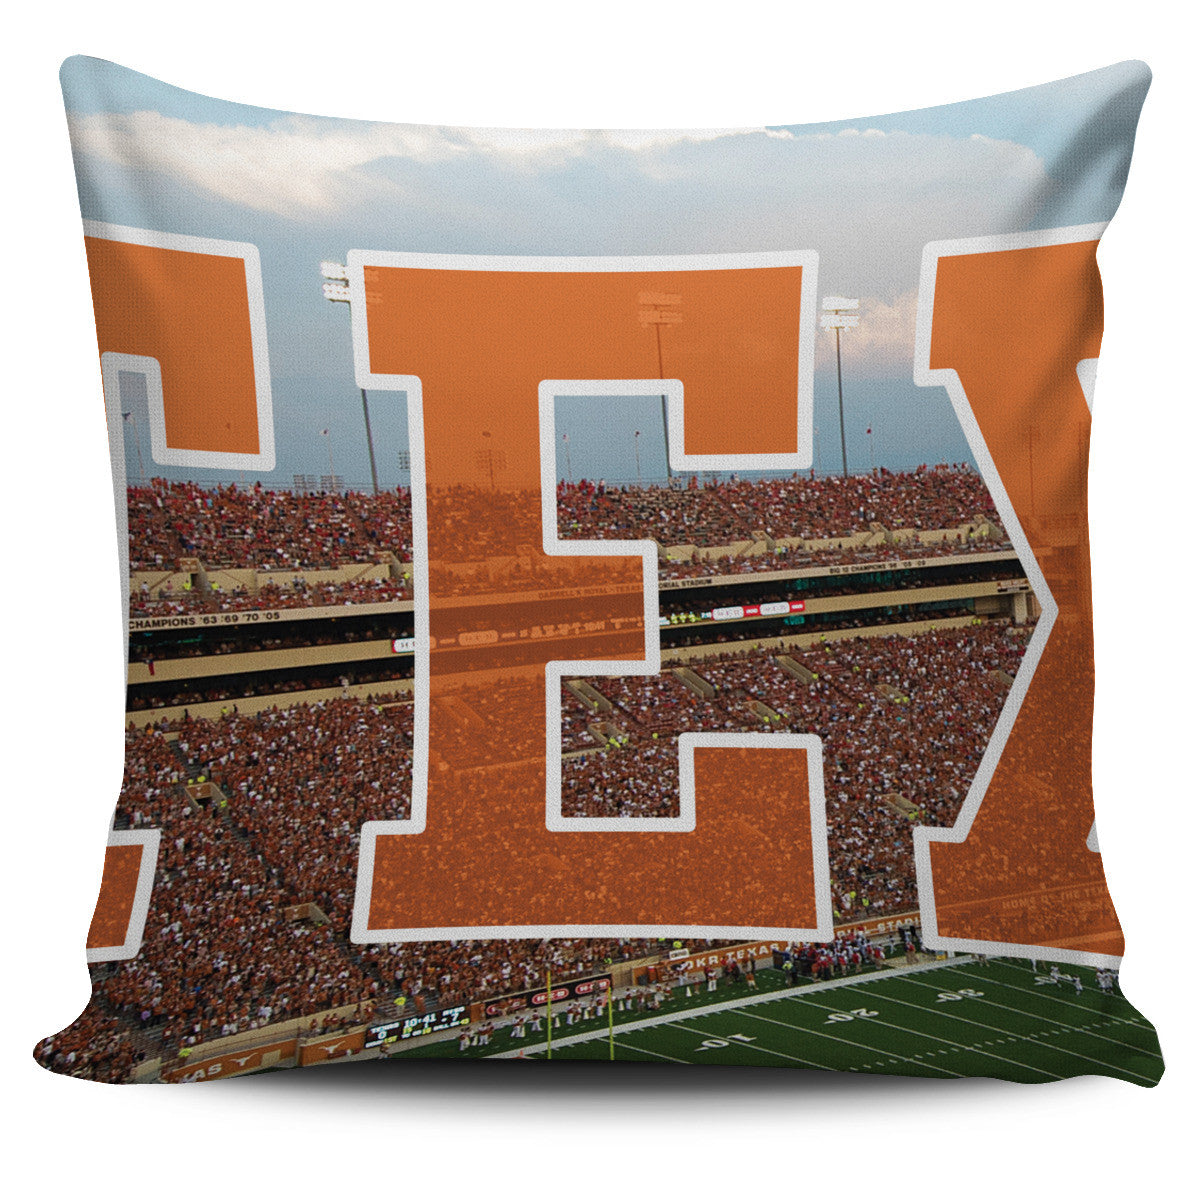 Buy Texas Throw Pillow Cover Set At Society Of Prints For